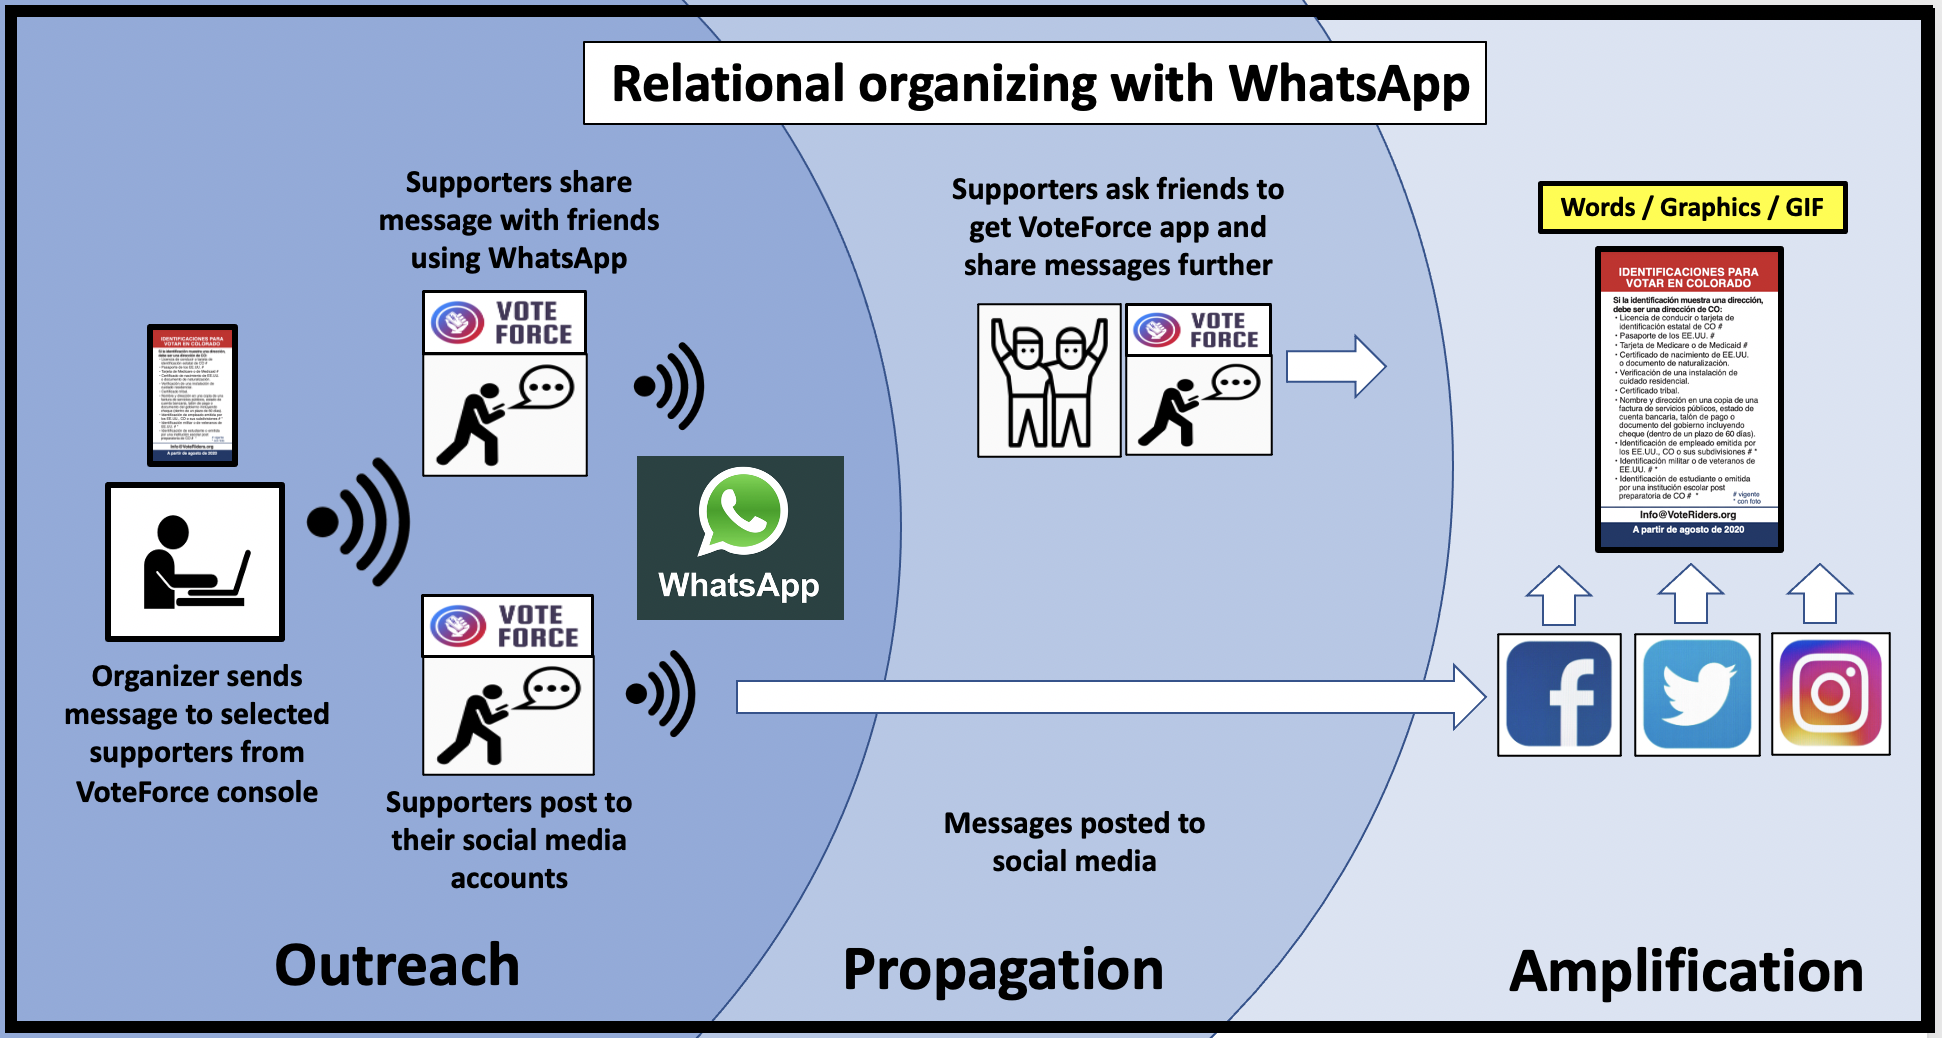 WhatsApp can be used for relational organizing in the Hispanic community with the VoteForce app